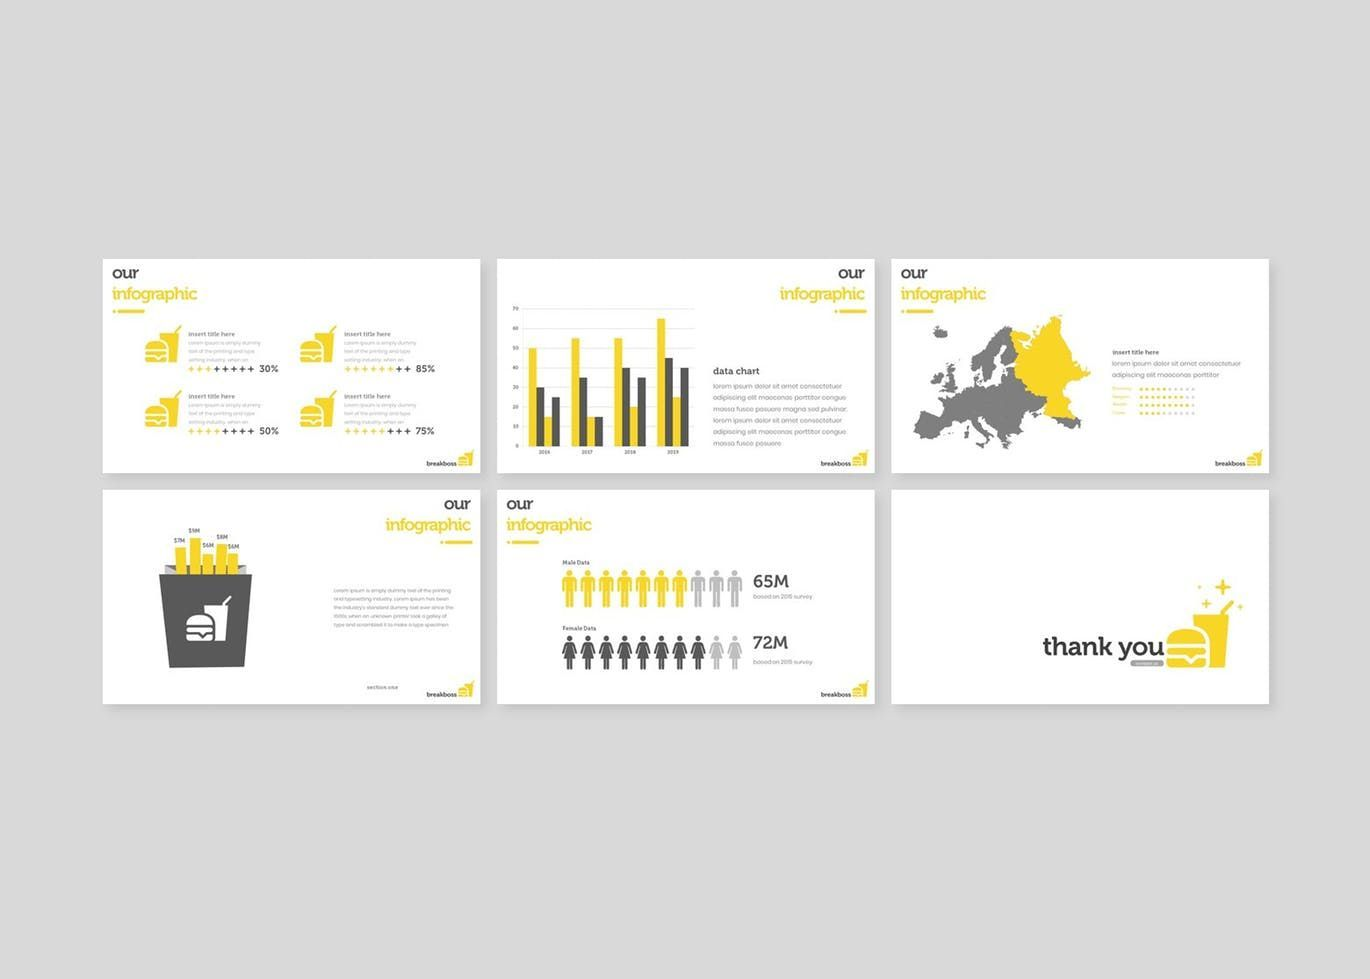 Breakboss - Google Slides Template, Slide 5, 07633, Presentation Templates — PoweredTemplate.com